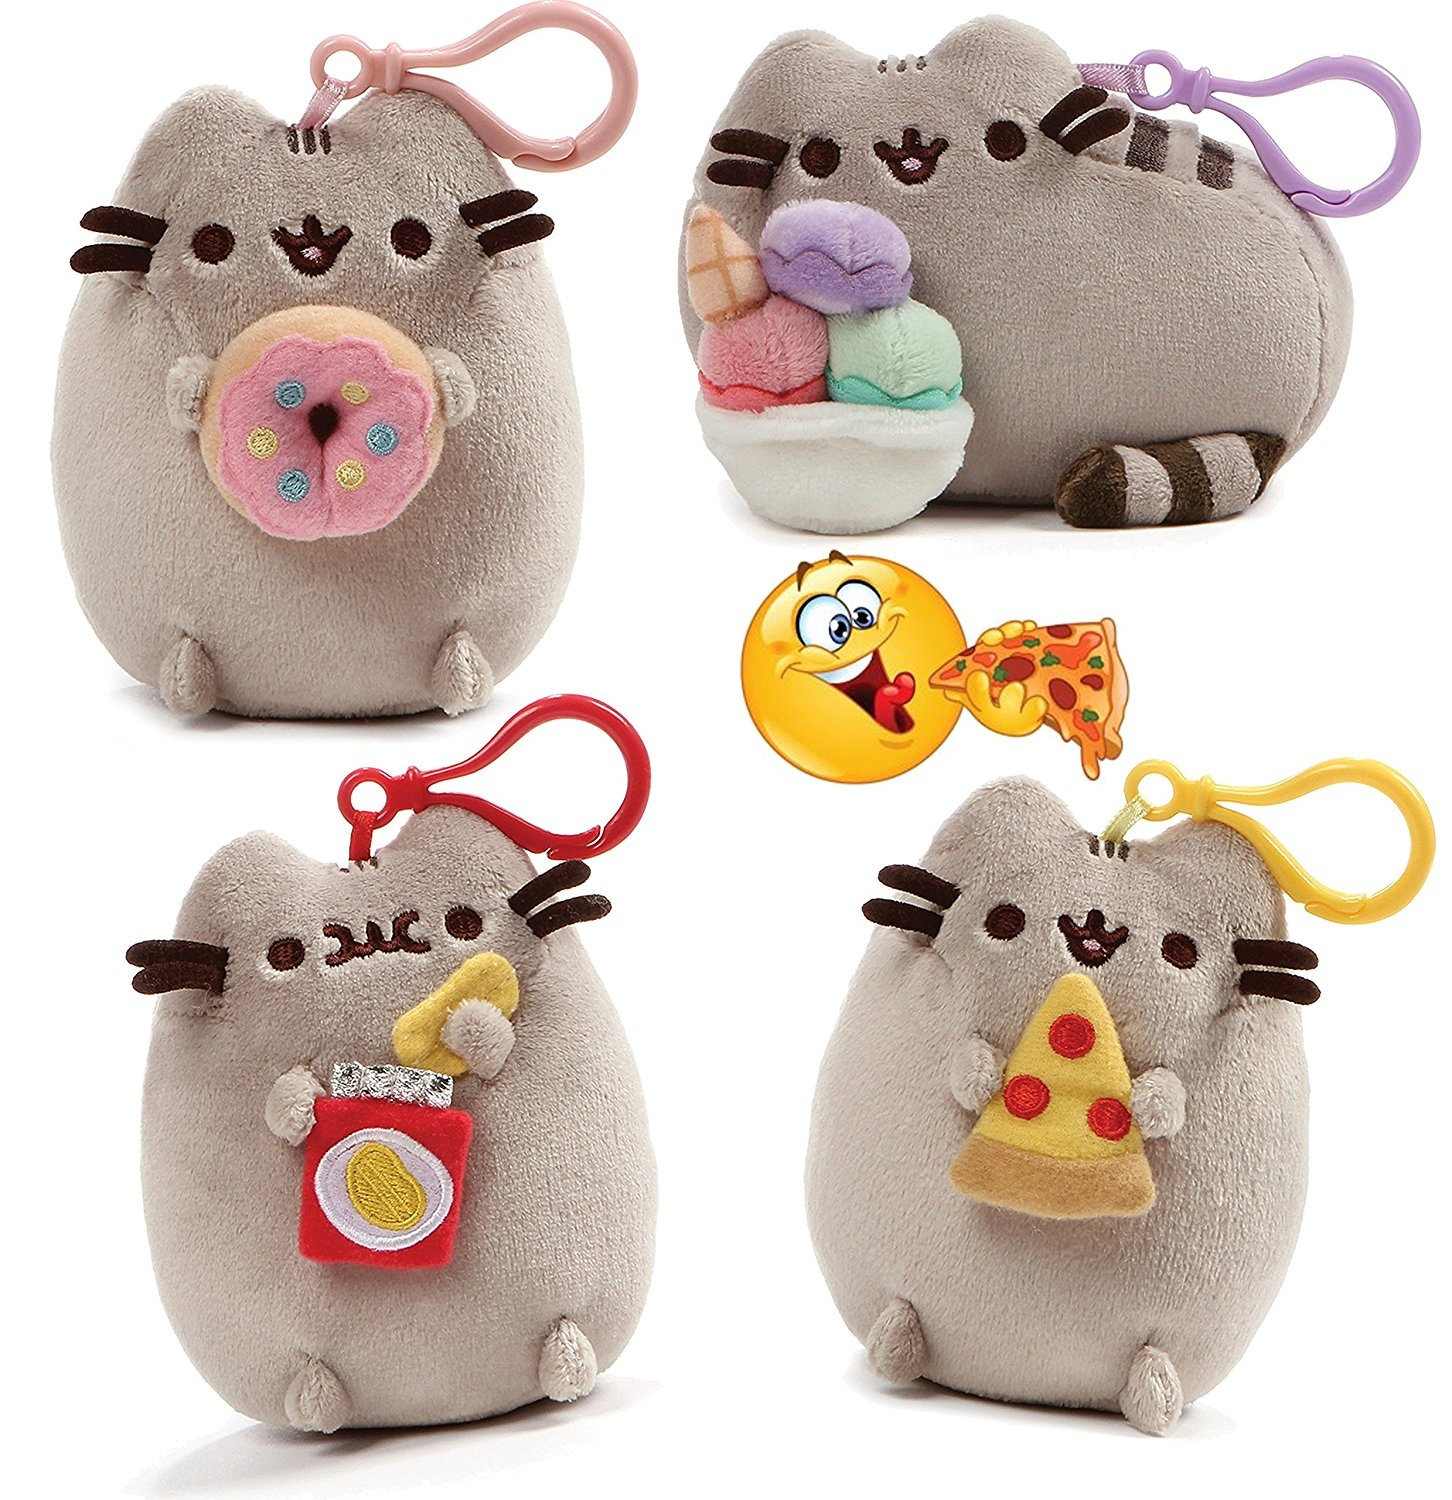 Pusheen The Cat Toys Buy Online From Gund Holiday Sweater